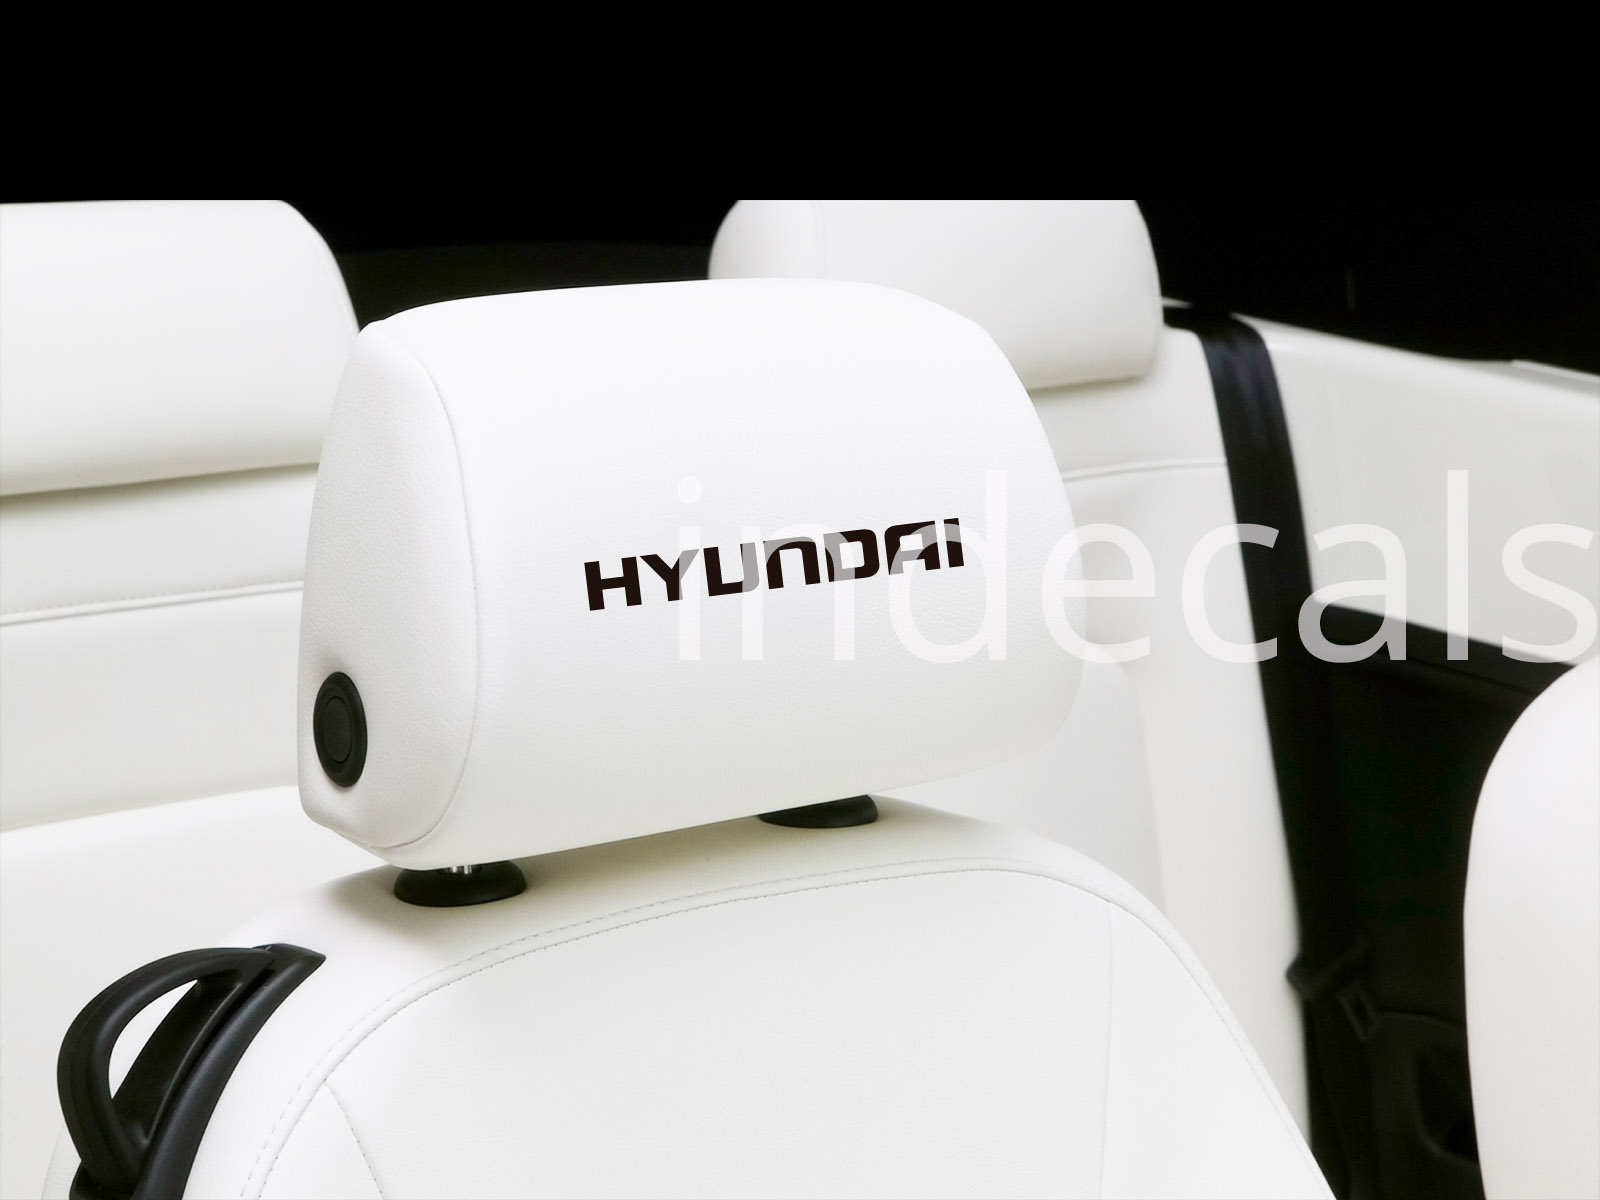 6 x Hyundai Stickers for Headrests - Black